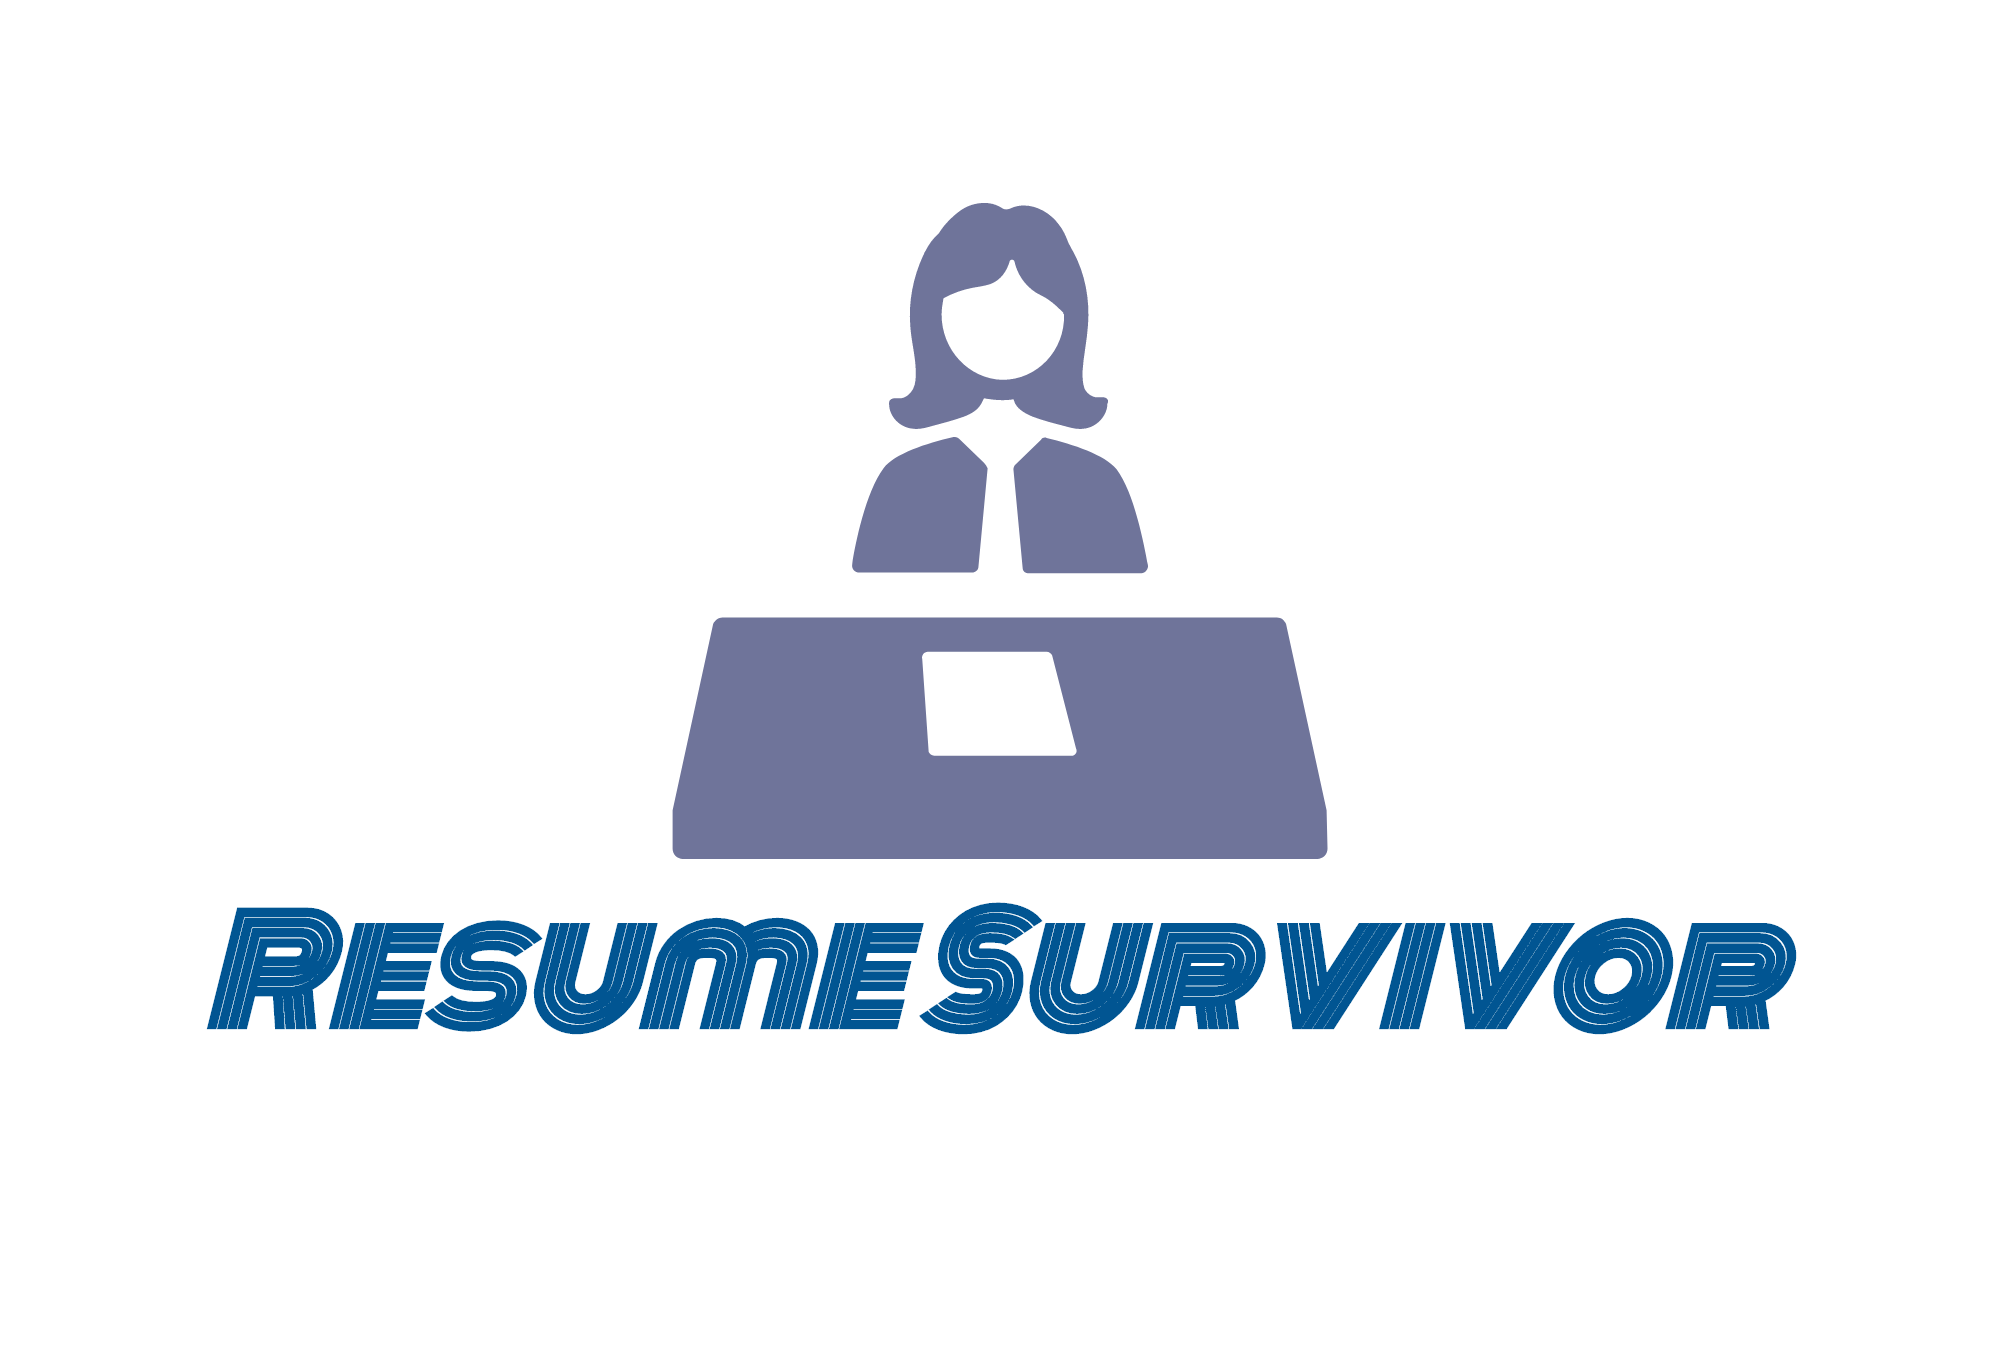 Resume Survivor